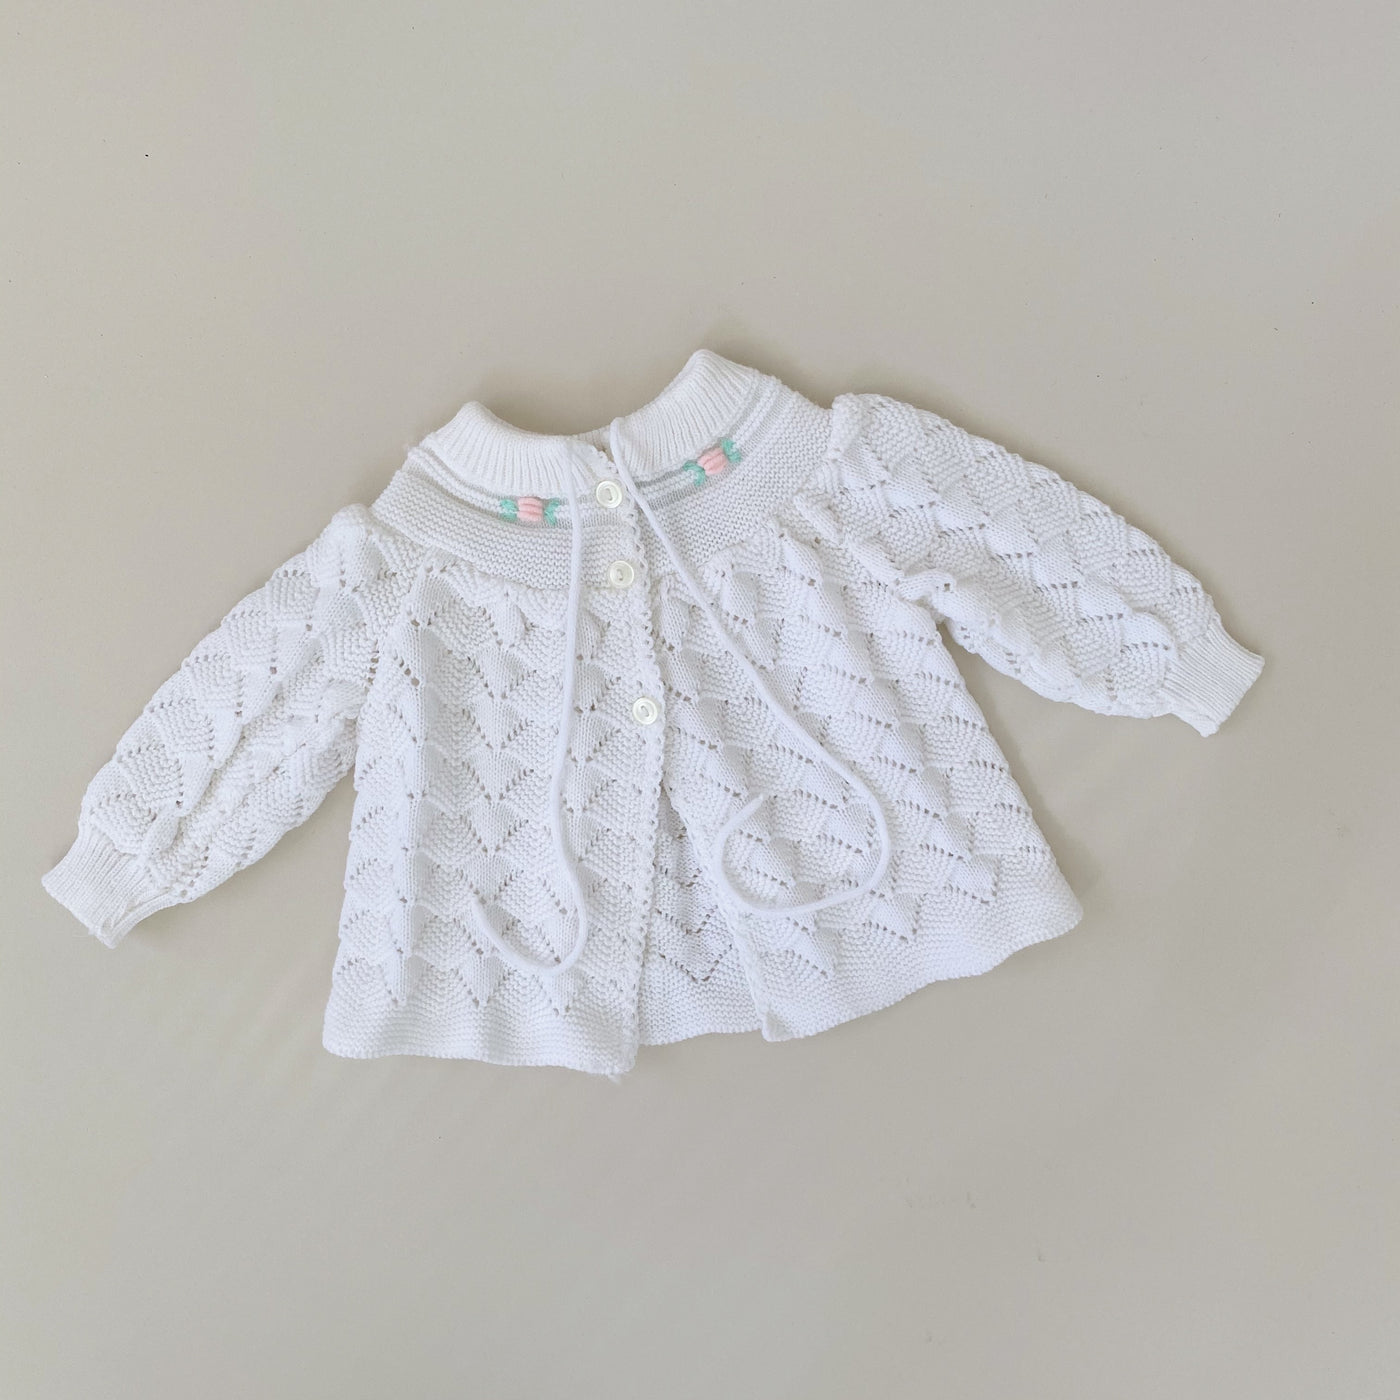 Bebe by Cradlecraft Sweater / Size 3-6M